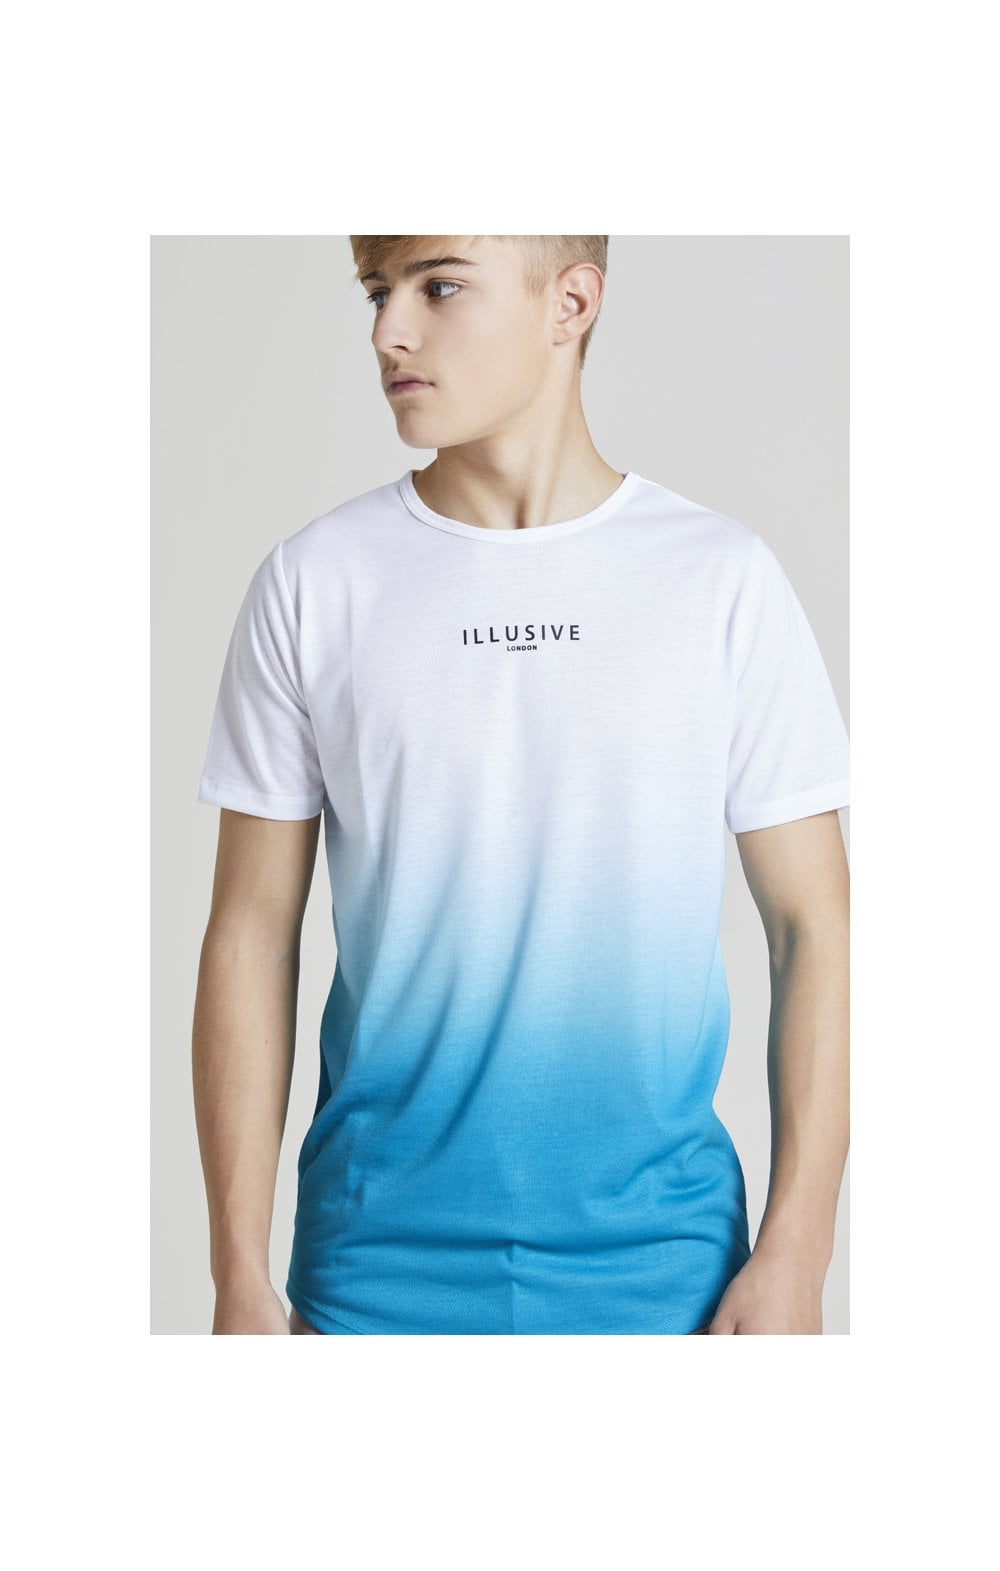 Illusive London Core T-Shirt Dégradé - Blanc et Sarcelle